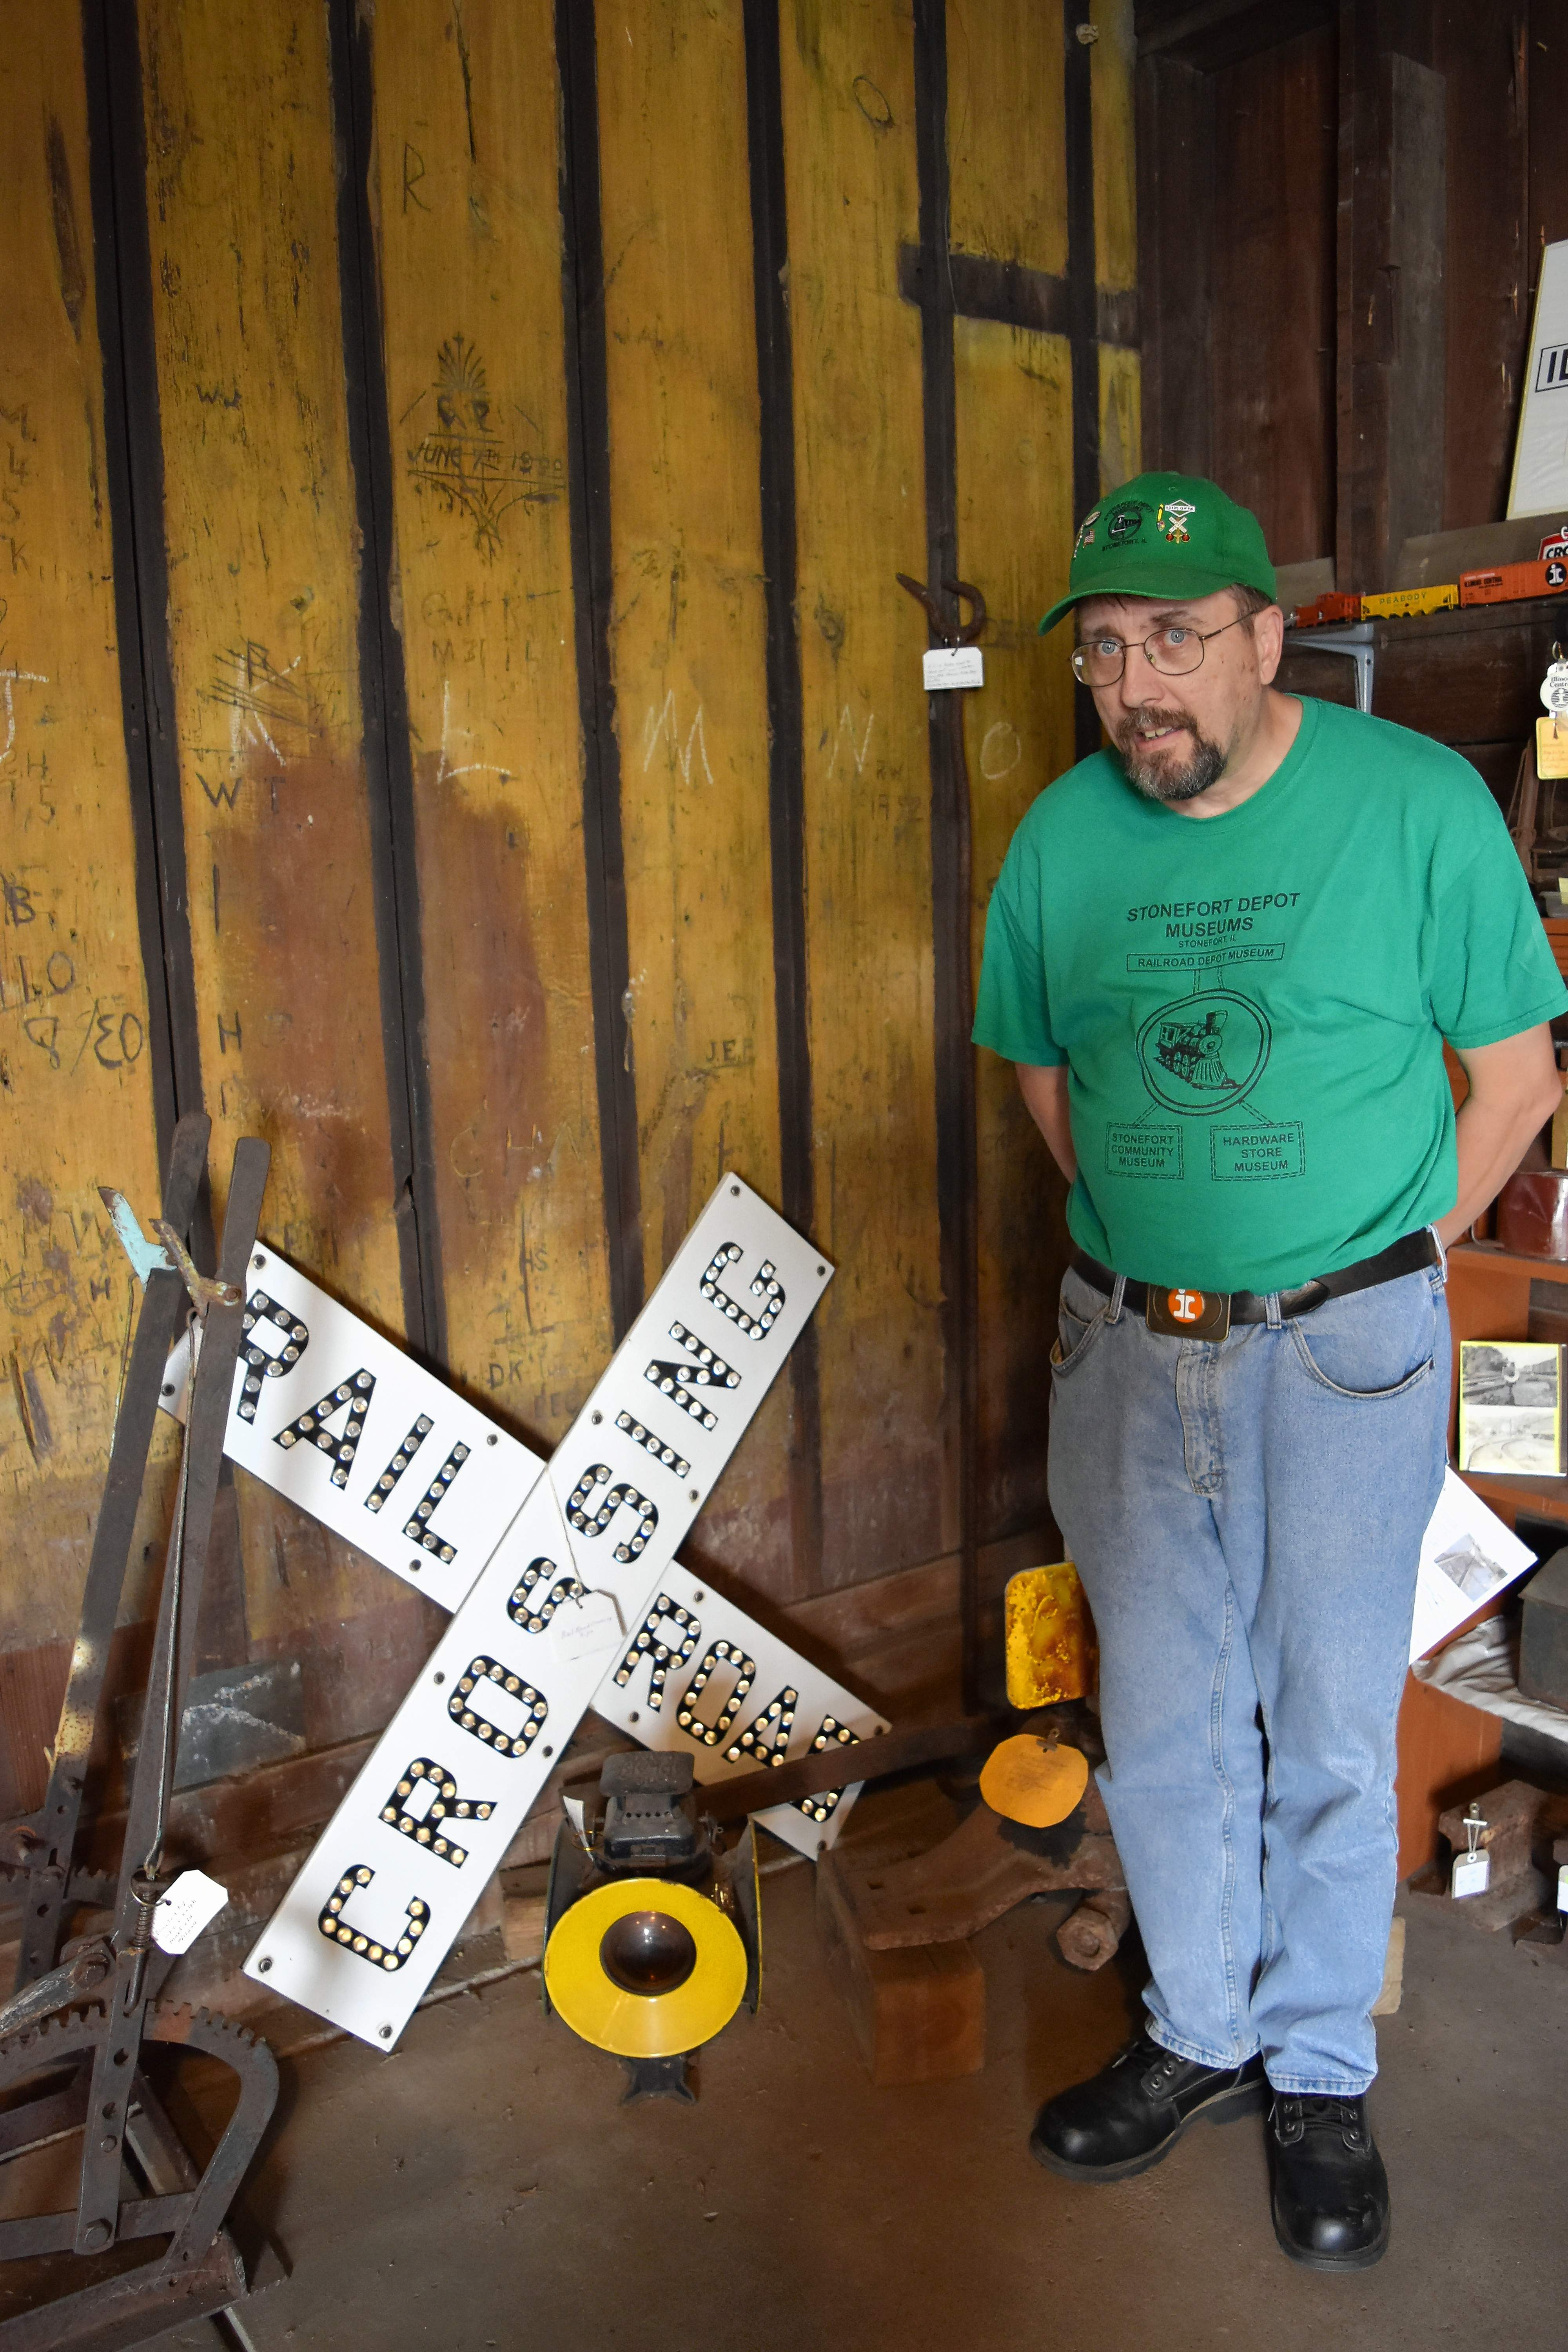 Ralph Maxfield, a volunteer assistant at the depot museum, stands next to a railroad crossing sign he donated. Maxfield has been collecting railroad memorabilia and related items for many years and has been a regular donor to the museum.